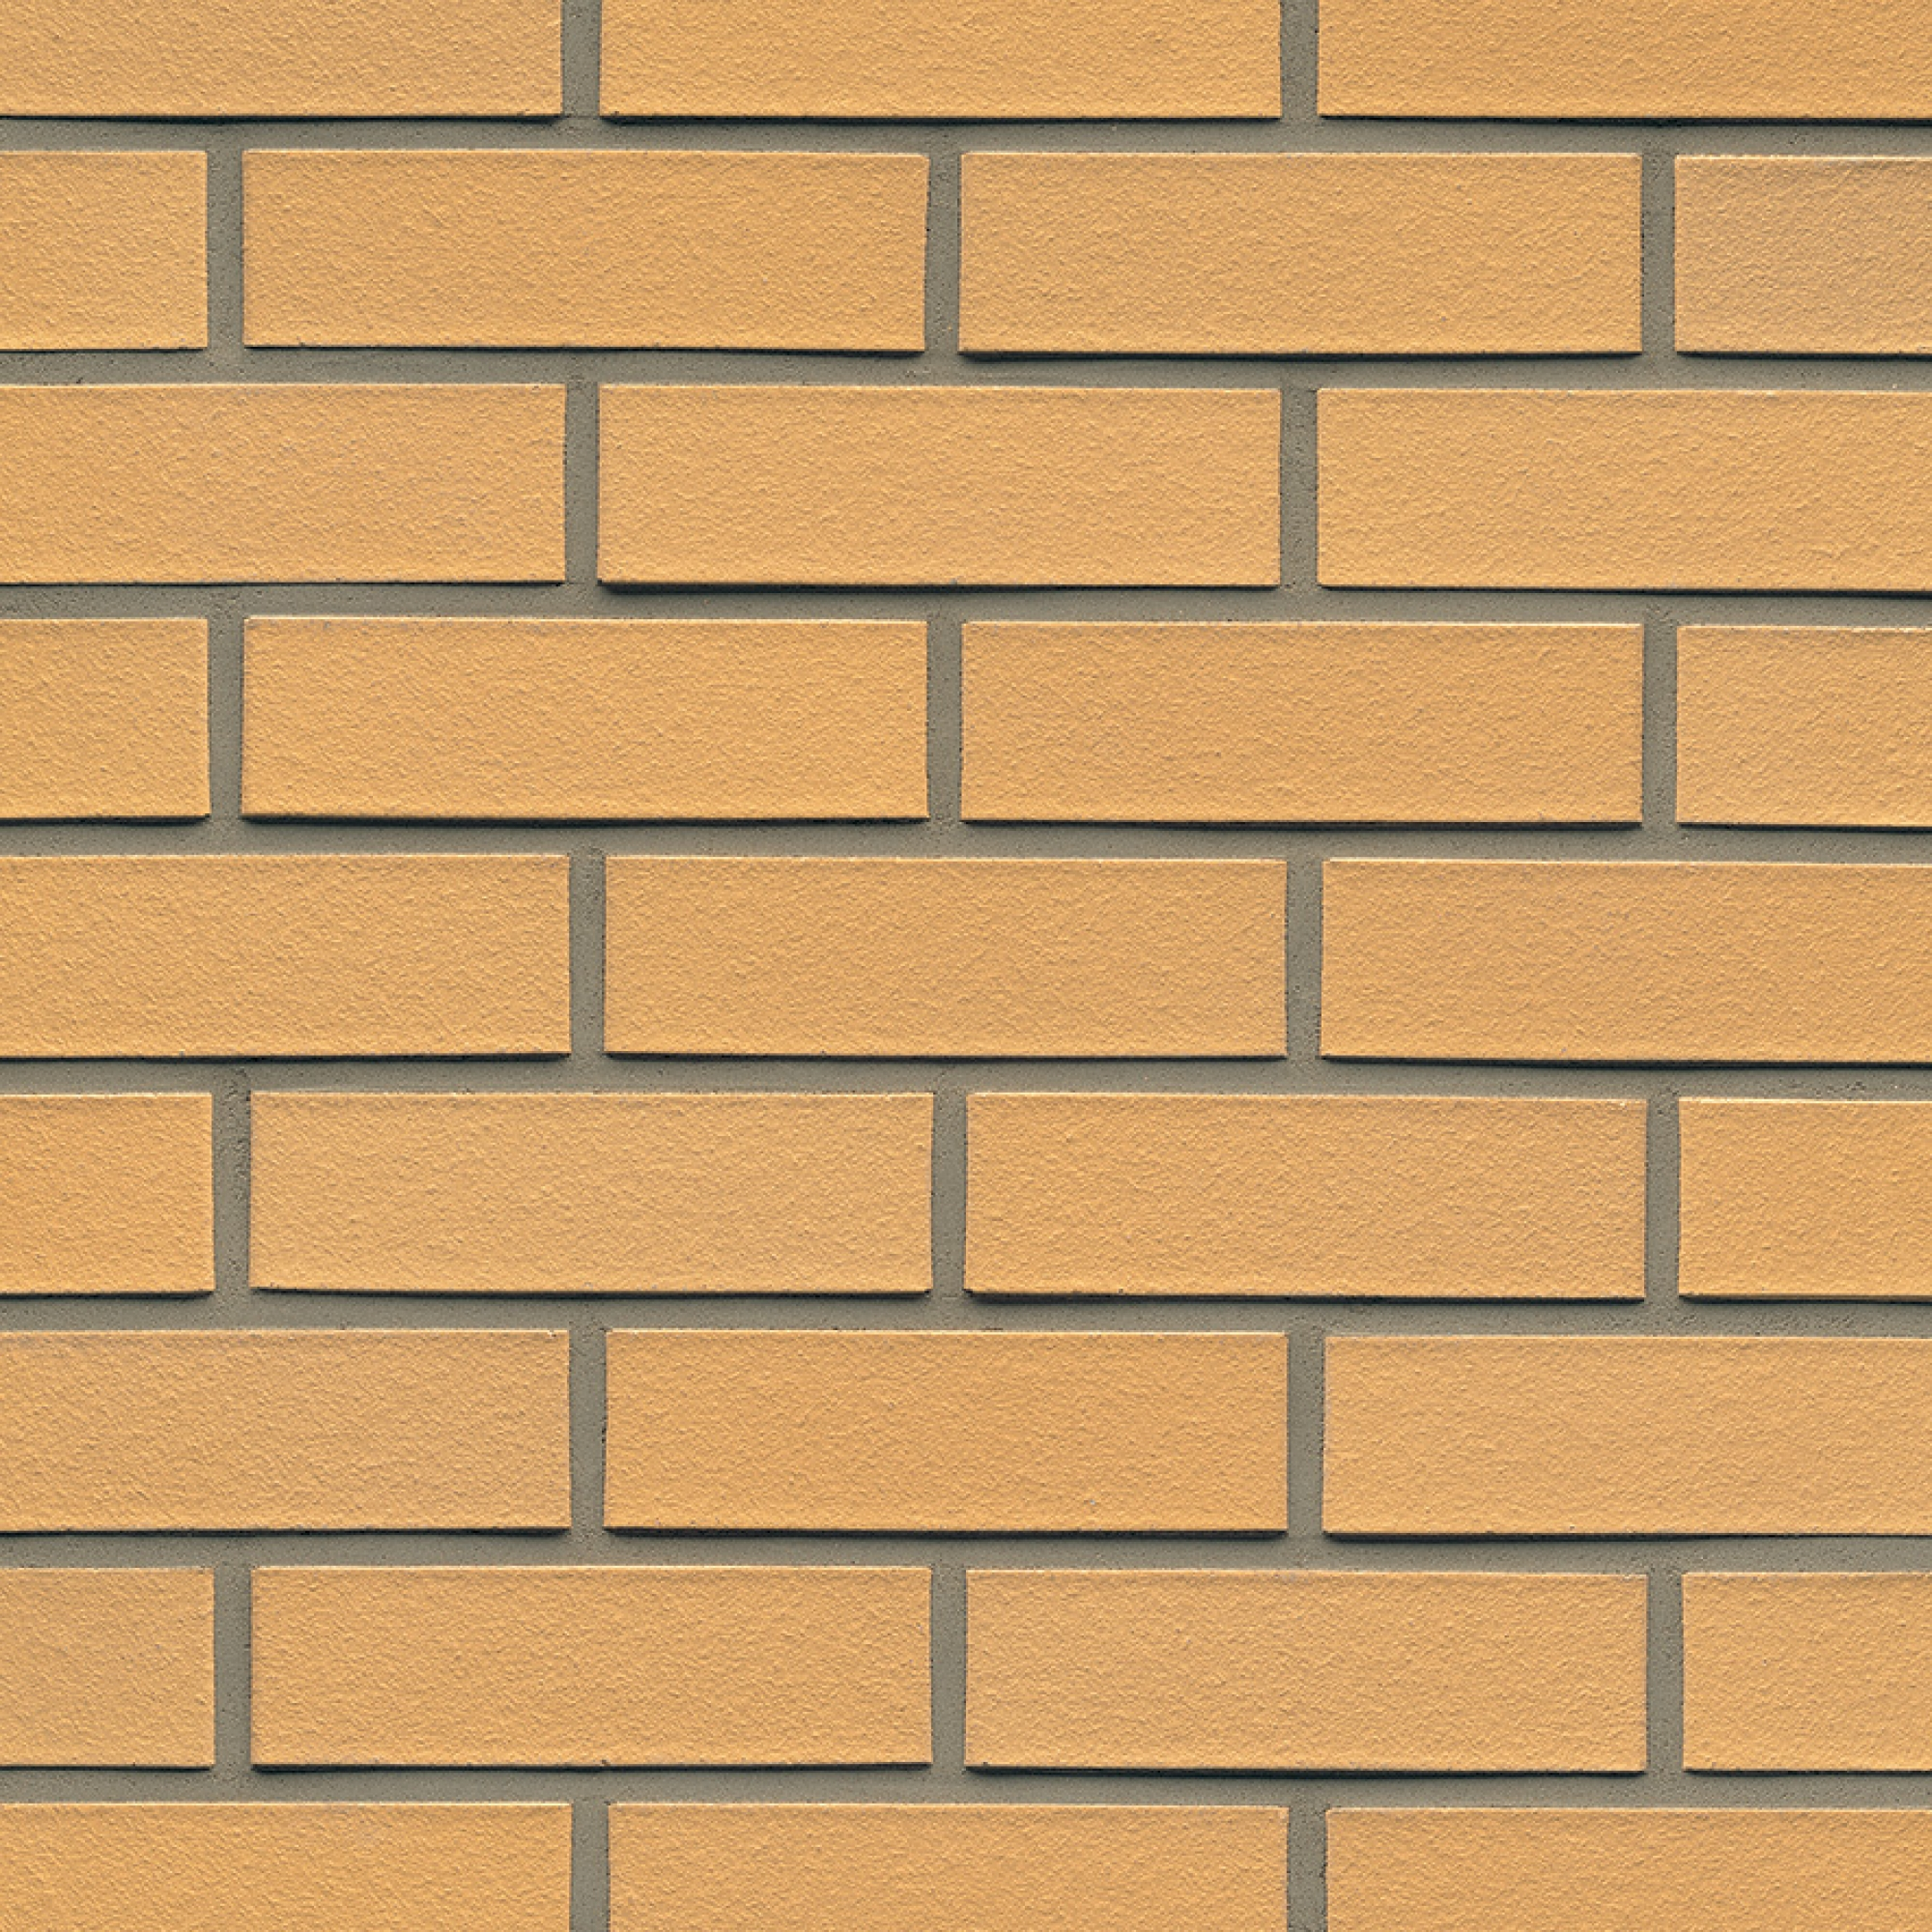 Sandstone Smooth Yellow Brick